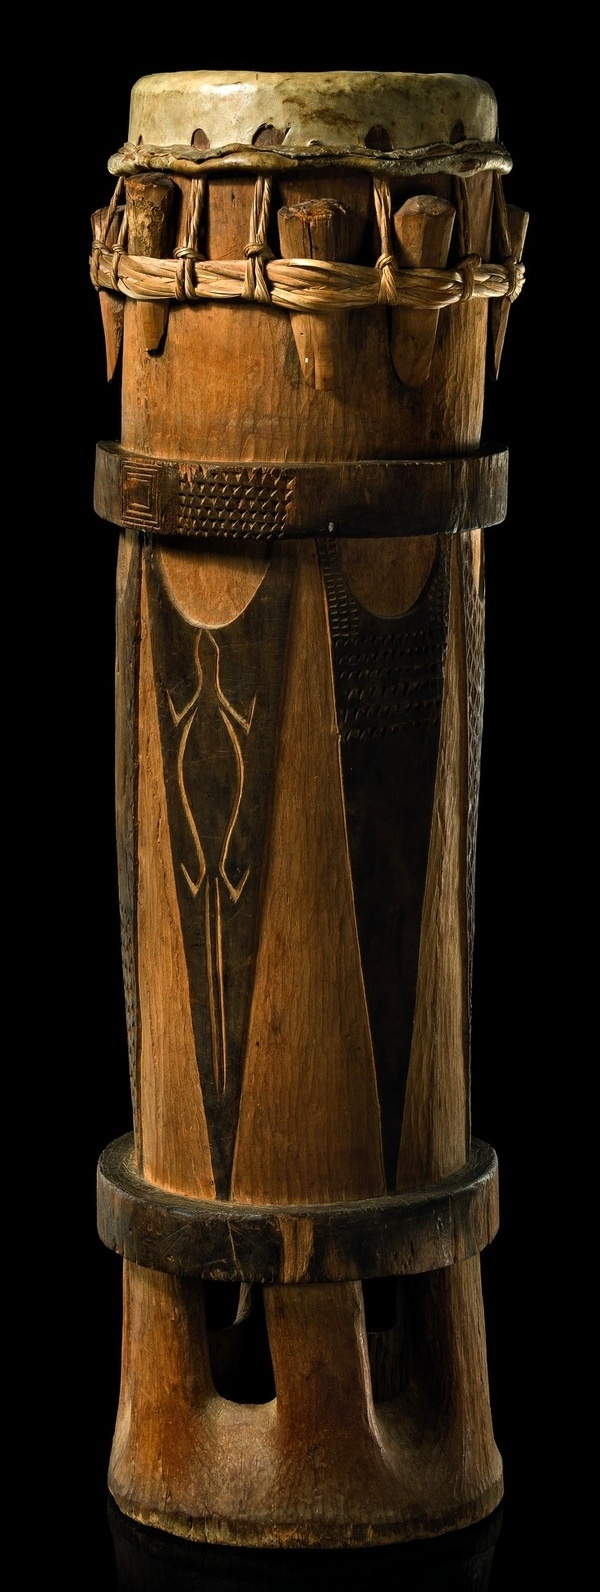 "Mbè"" drum from the Rio Muni, Fang people of Gabon/Equatorial Guinea (Early 1900s)"